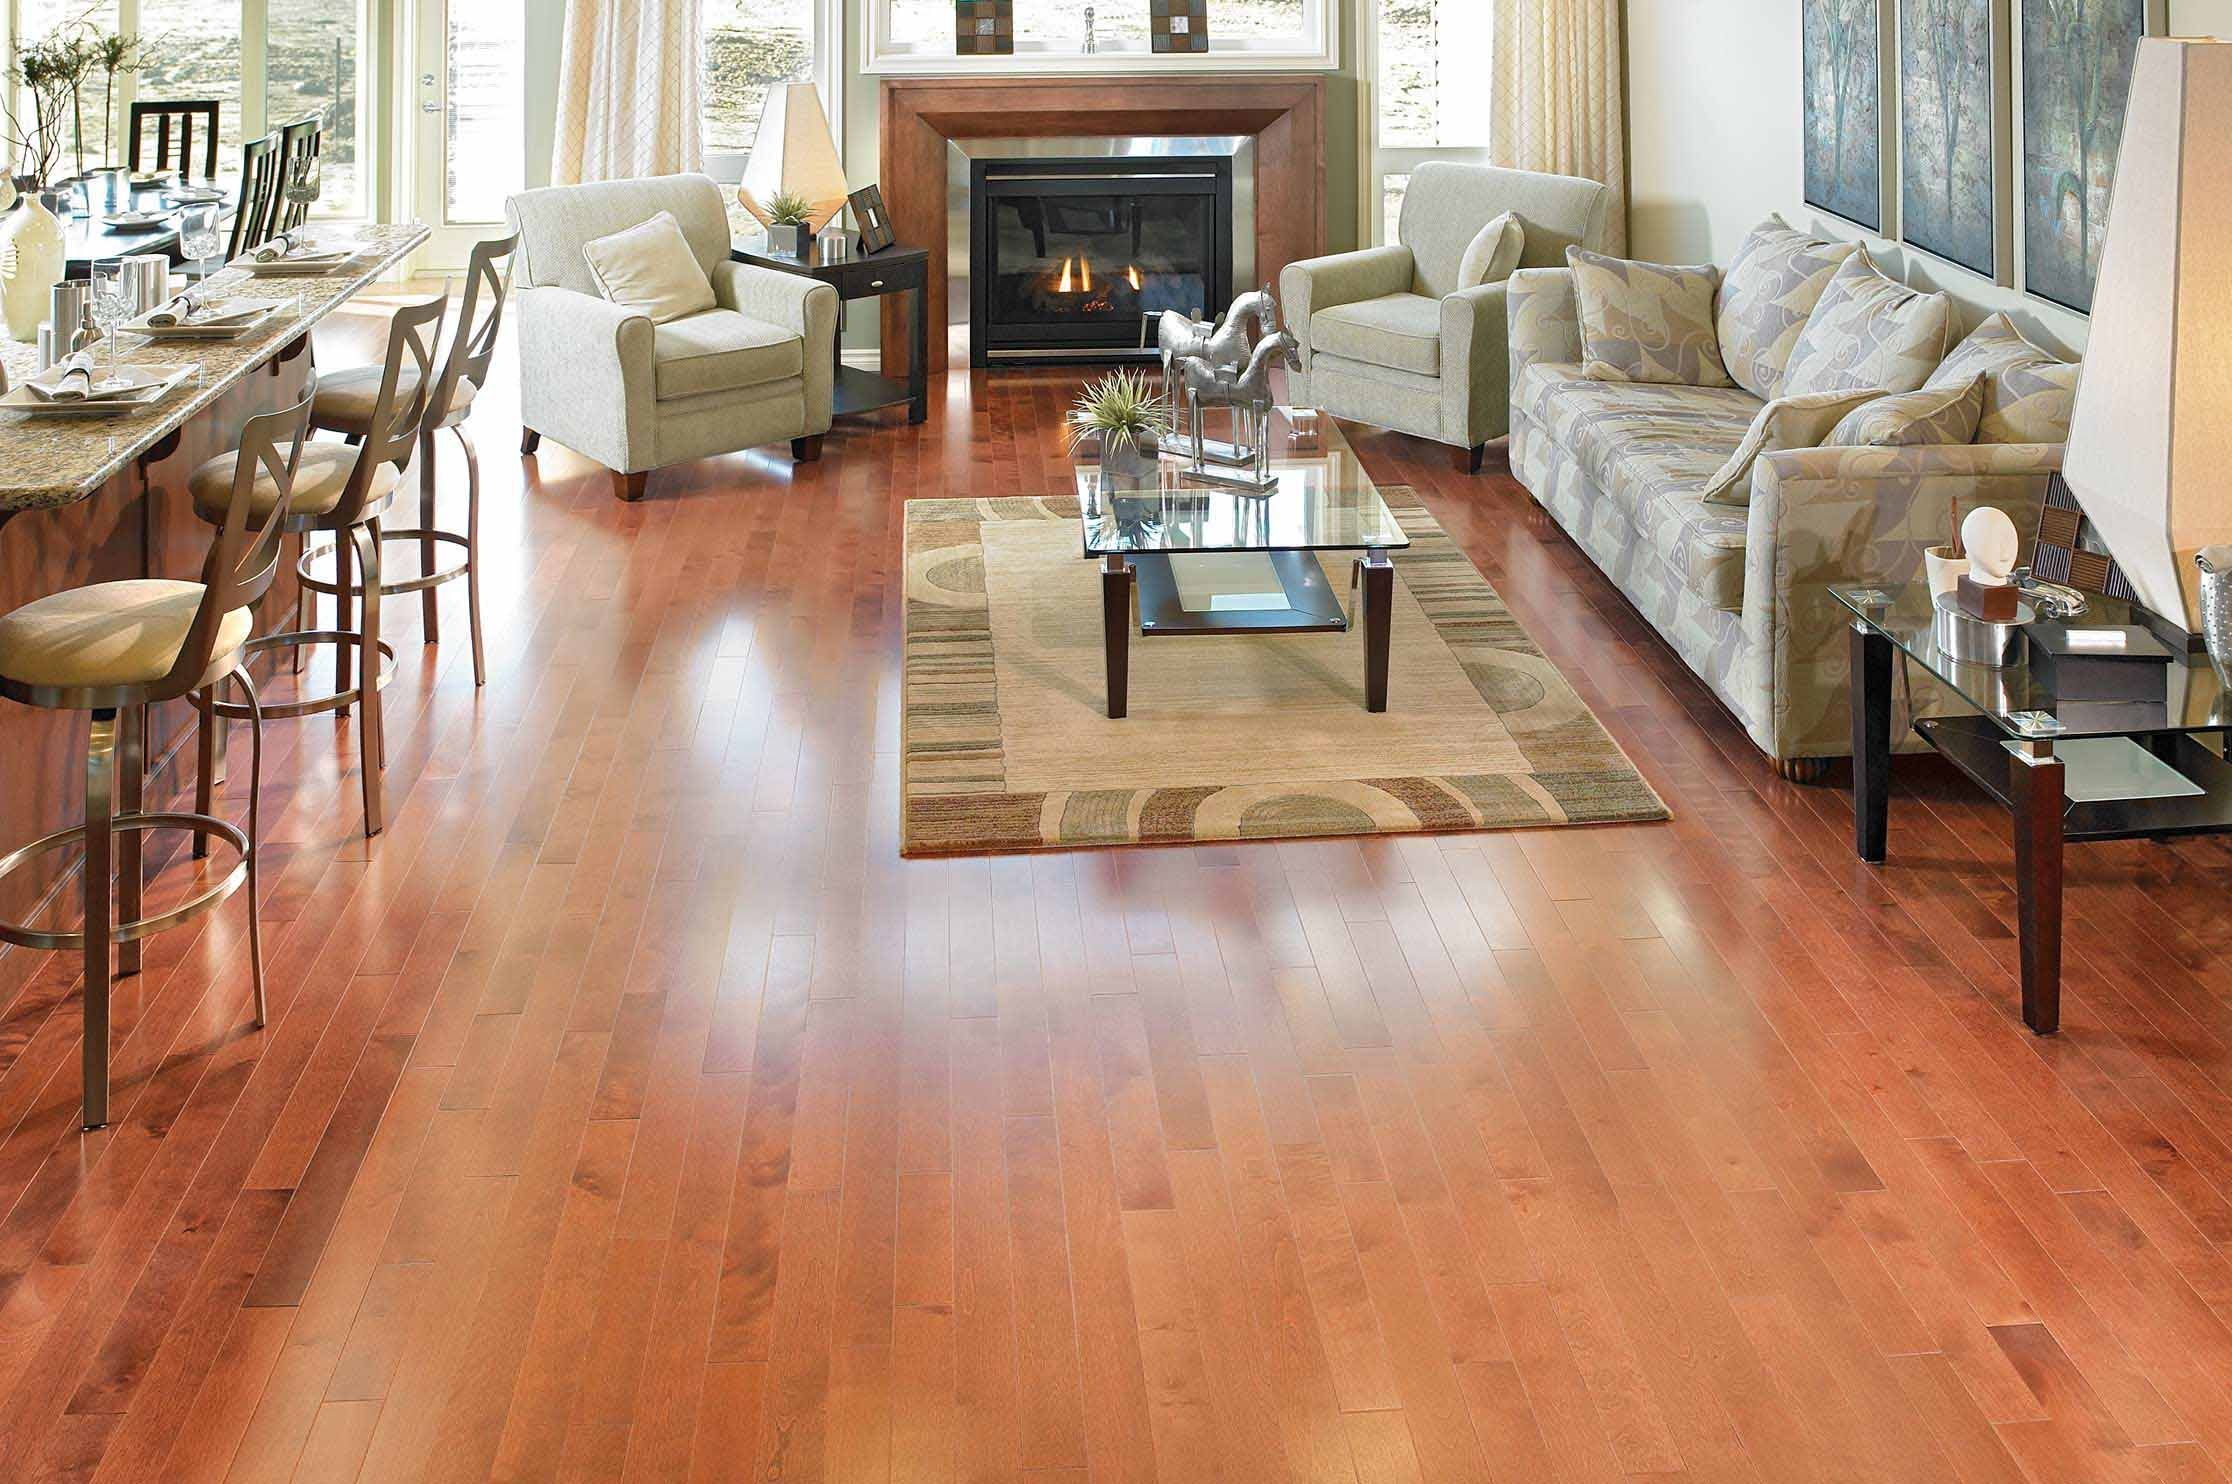 Mirage admiration maple cognac mirage hardwood floors for Mirage wood floors